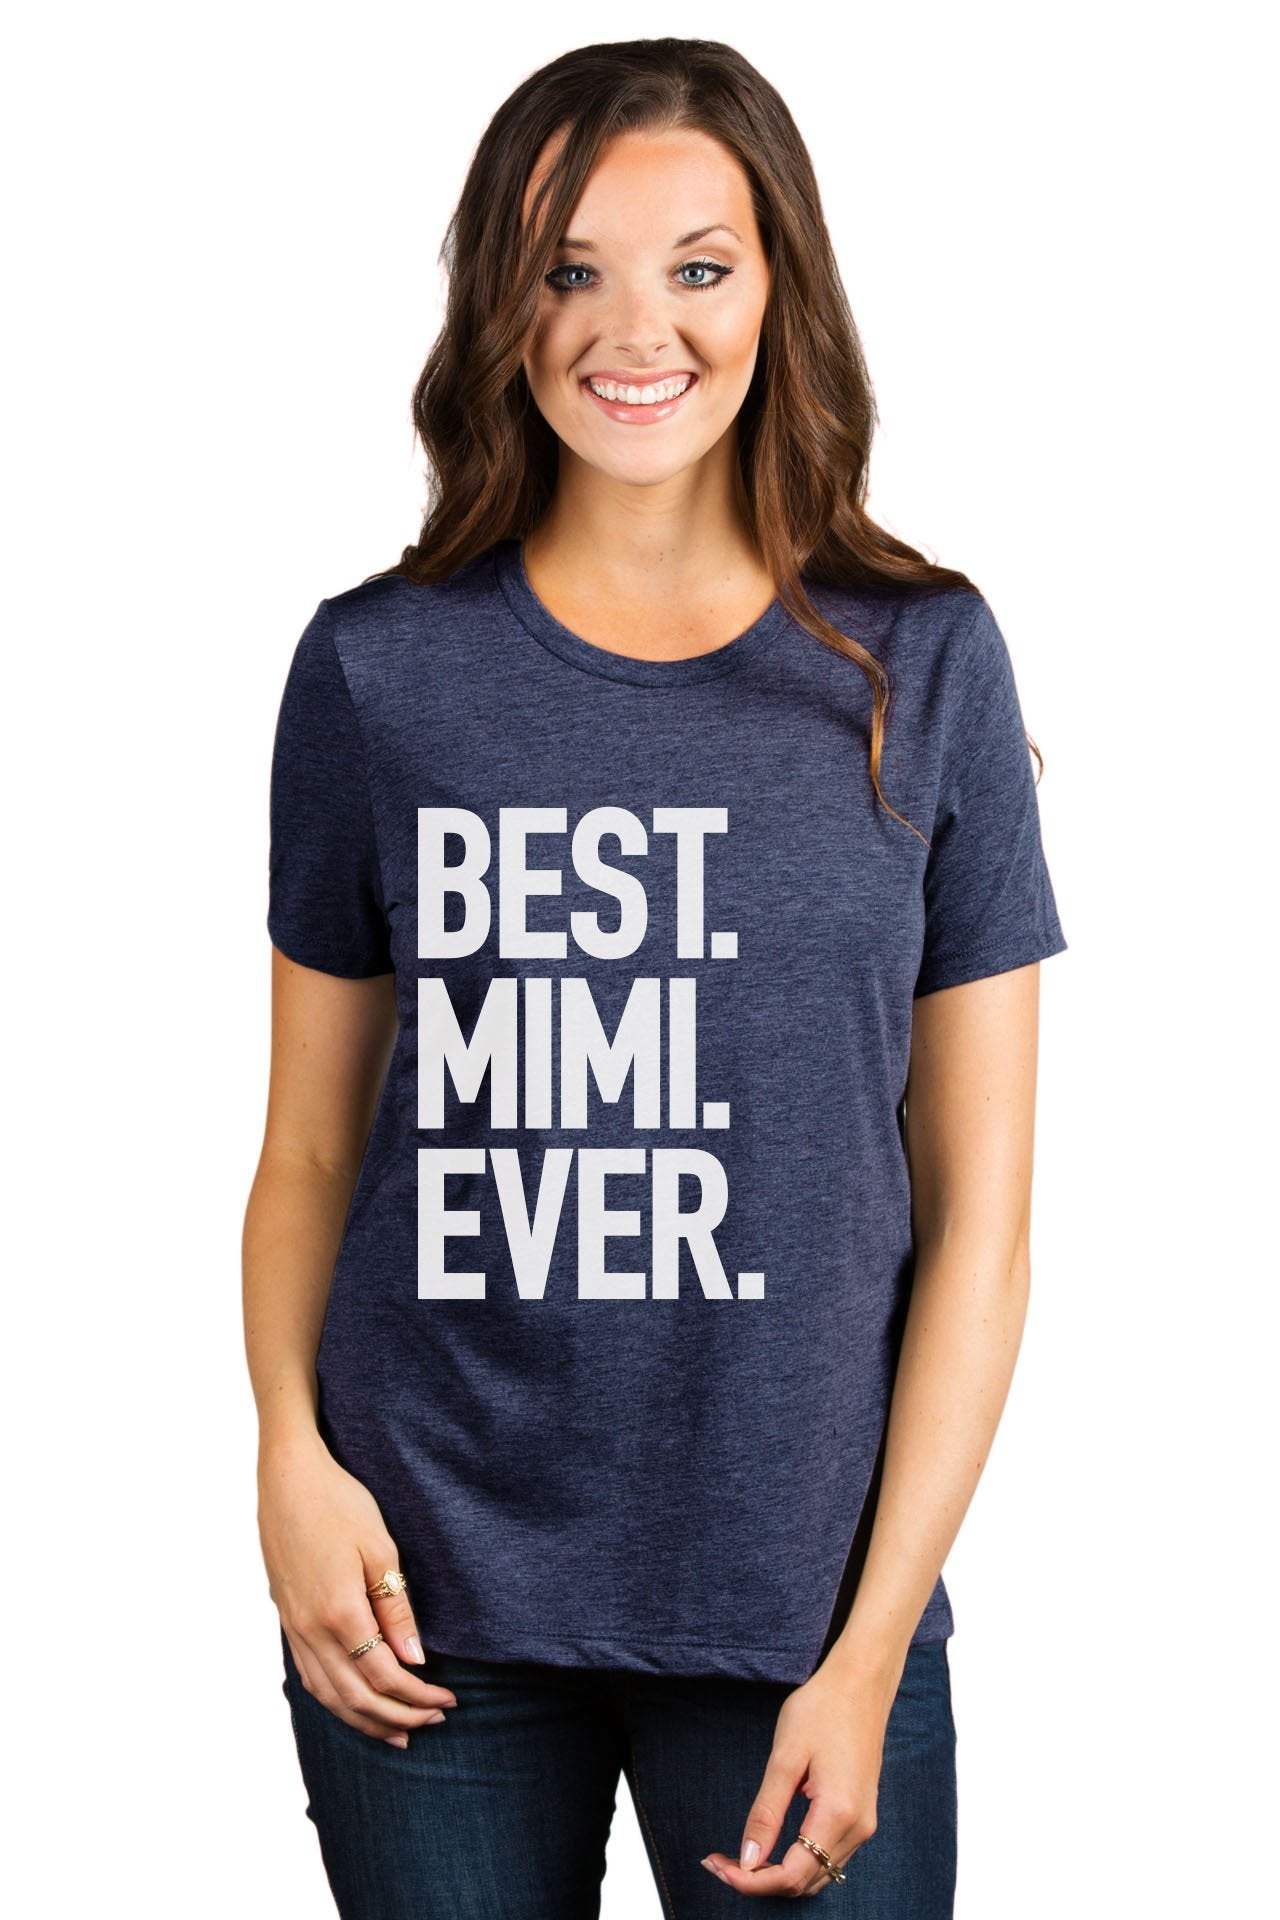 Best Mimi Ever - Thread Tank | Stories You Can Wear | T-Shirts, Tank Tops and Sweatshirts